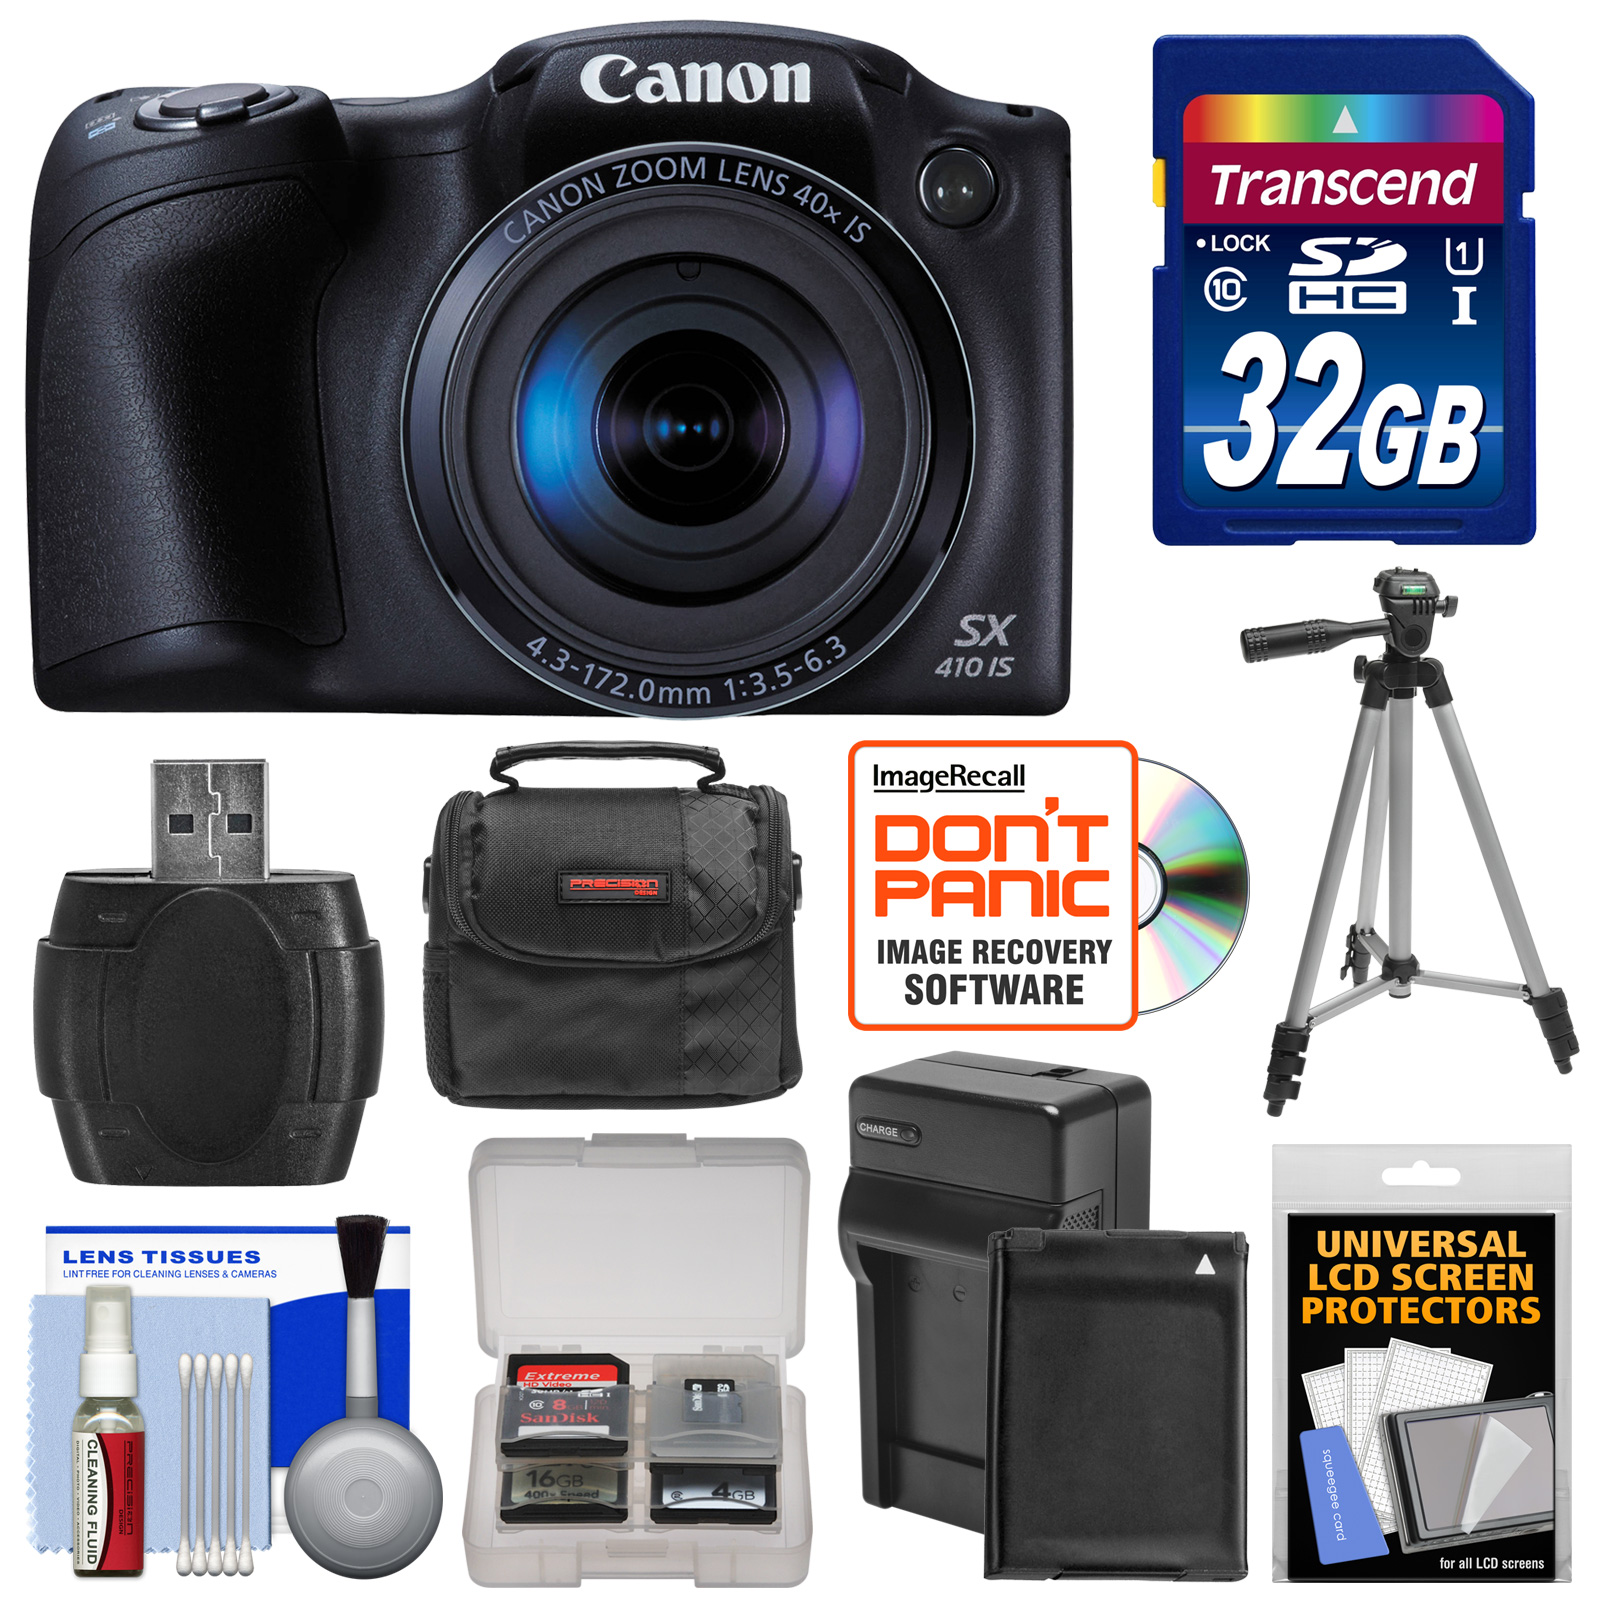 Canon PowerShot SX410 IS Digital Camera (Black) with 32GB Card + Battery & Charger + Case + Tripod + Kit